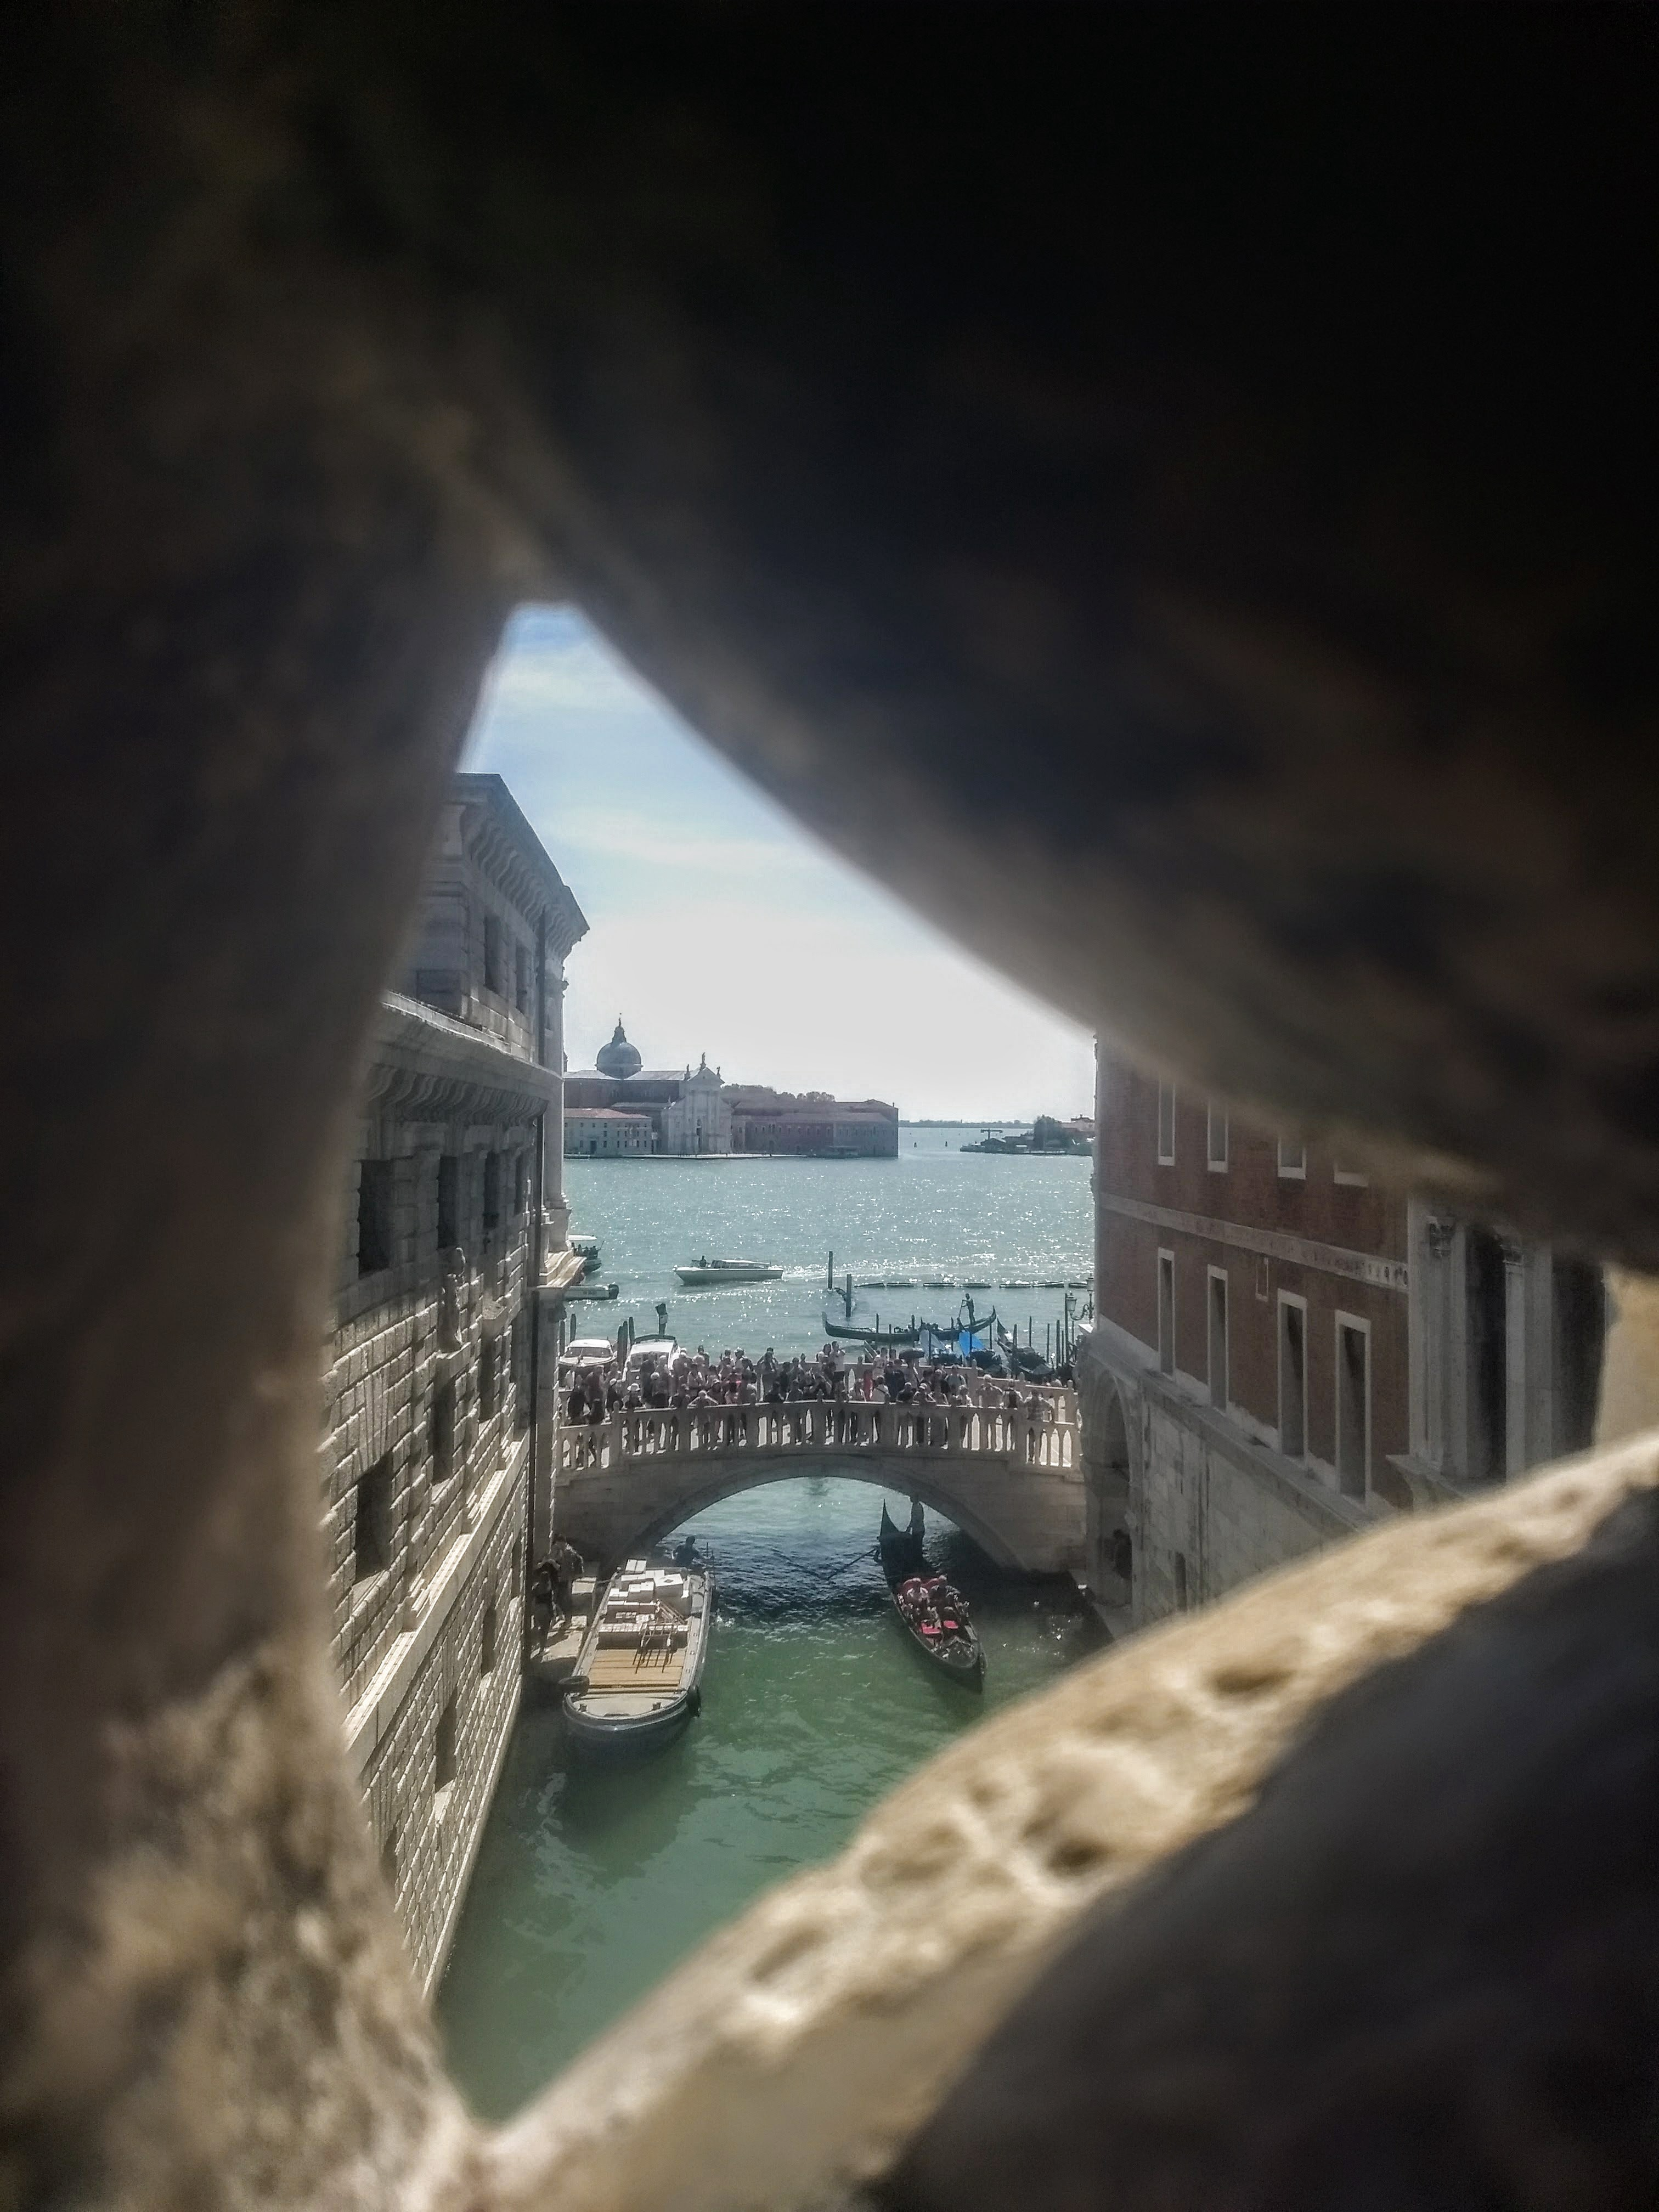 The Bridge of Sighs from outside (on left) and the view from inside the bridge (on right)!